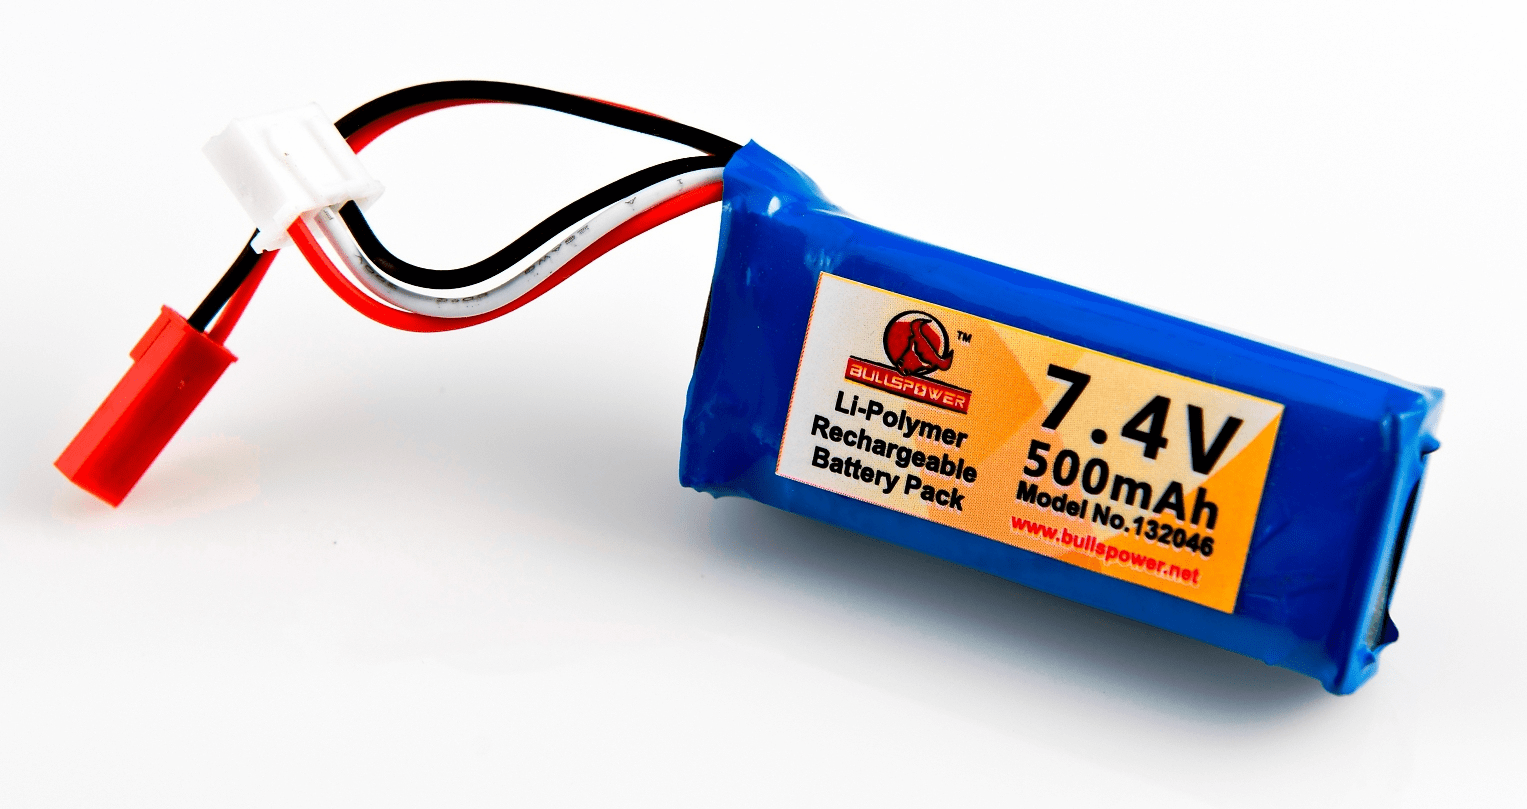 Wolverine Airsoft 7.4v 500mAh Lipo Battery